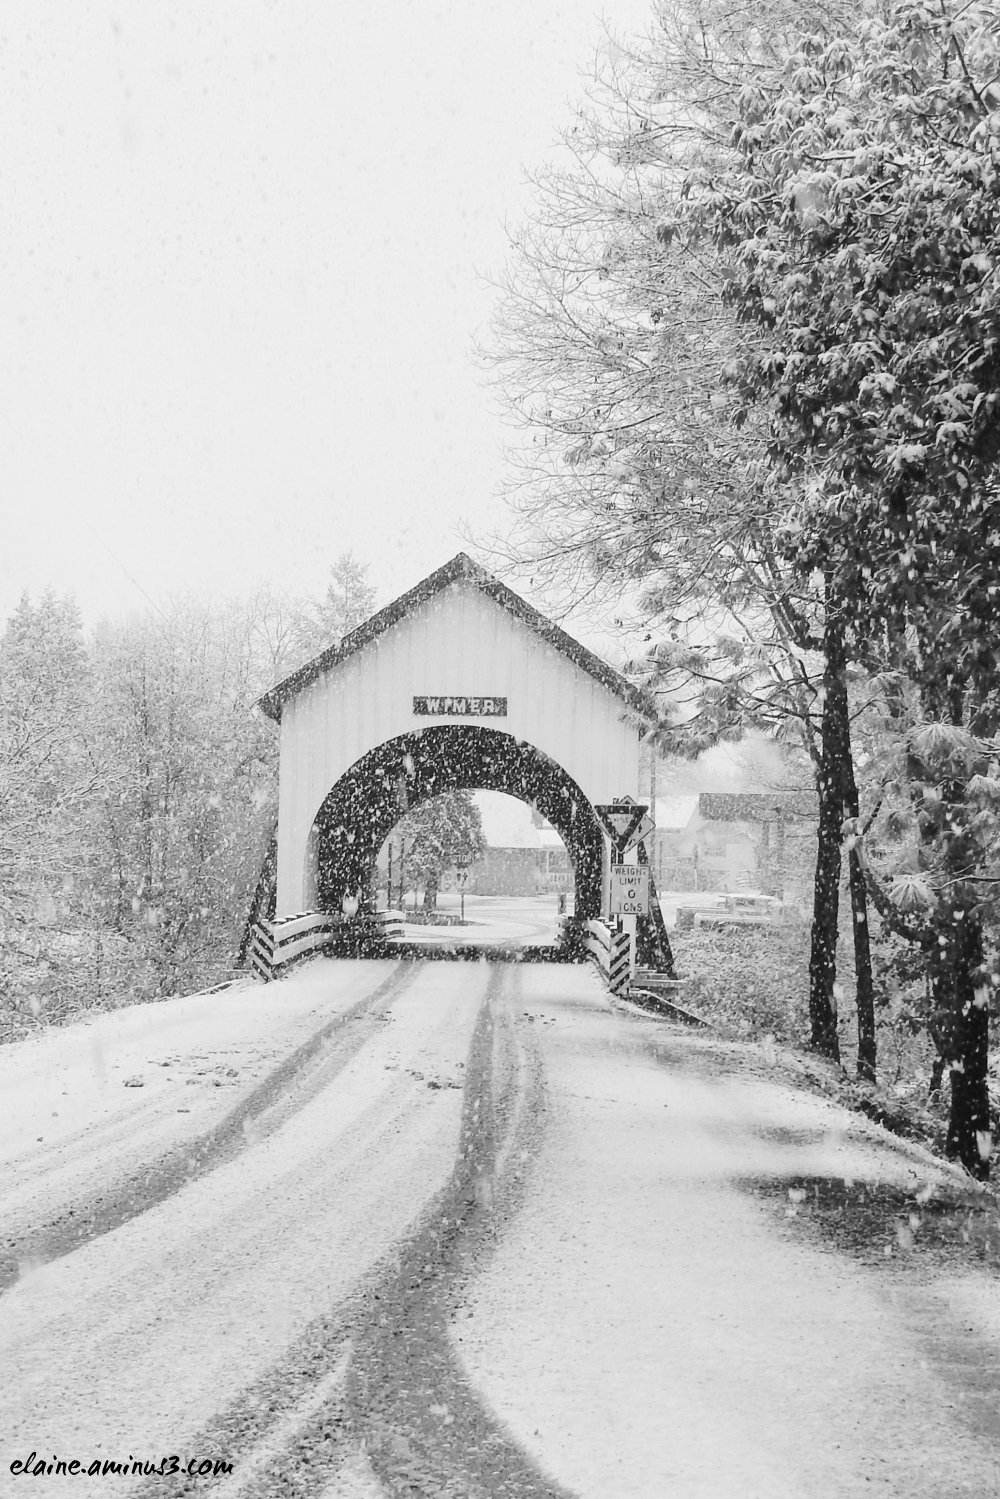 Wimer Covered Bridge